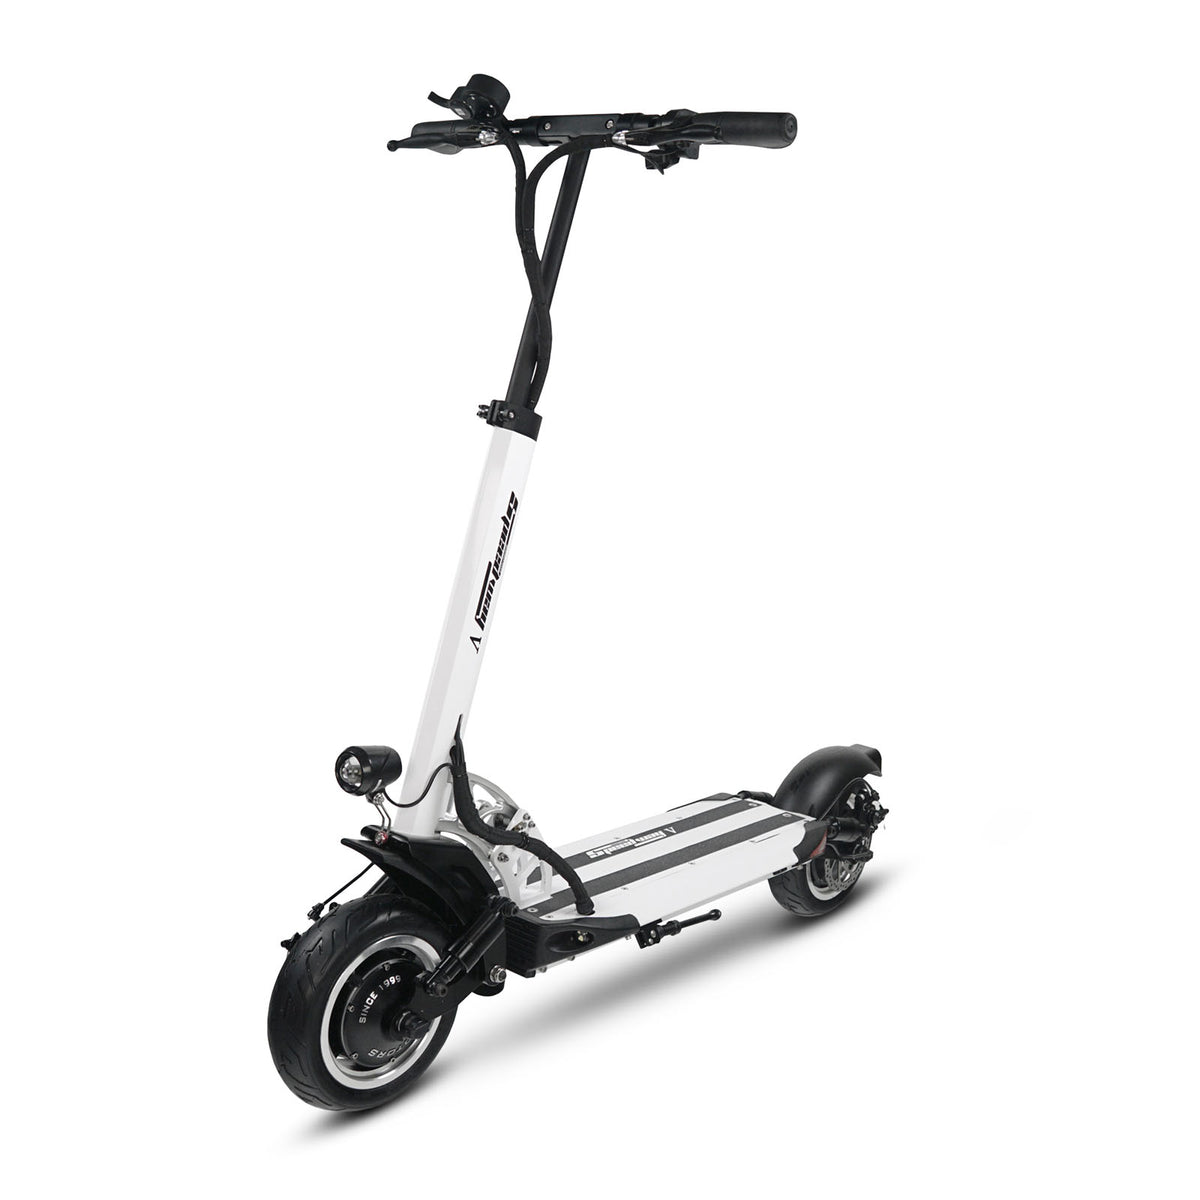 Speedway 5 Electric Scooter Profile